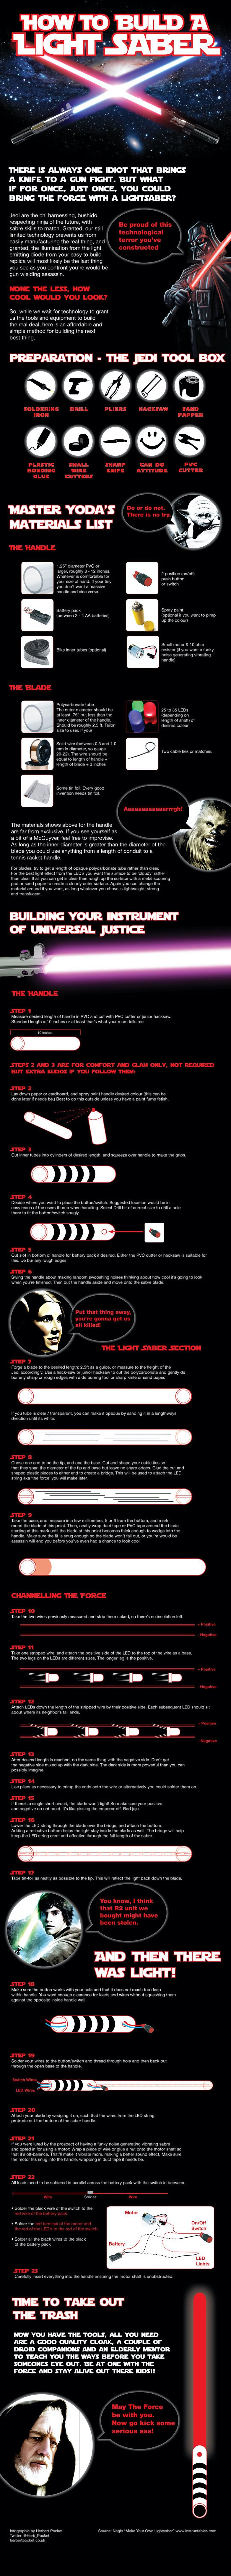 How to Make a Lightsaber (Infographic)